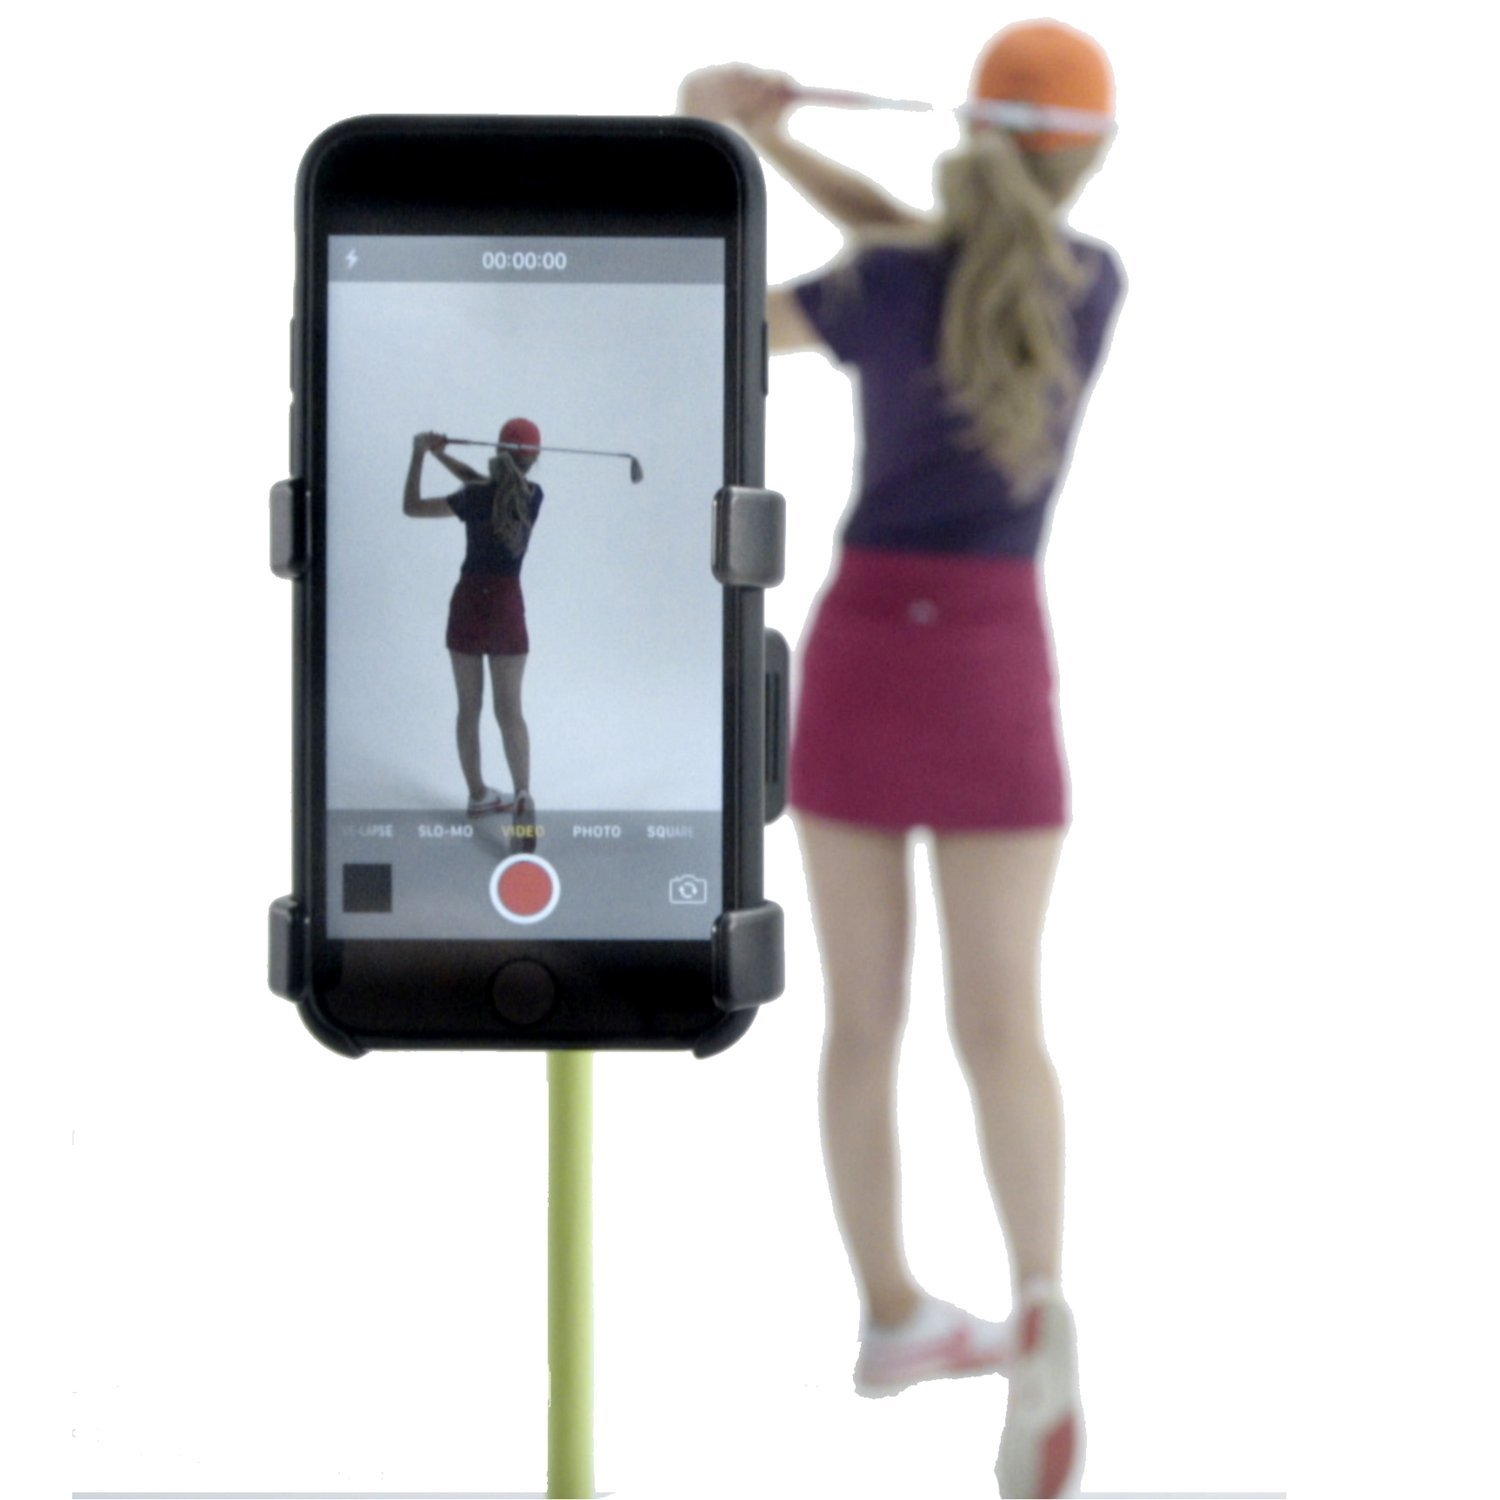 Record Golf Swing - Cell Phone Clip Holder and Training Aid by SelfieGOLF TM - Golf Accessories | The Winner of The PGA Best of 2017 | Compatible with Any Smart Phone (Red/Black) by Selfie Golf